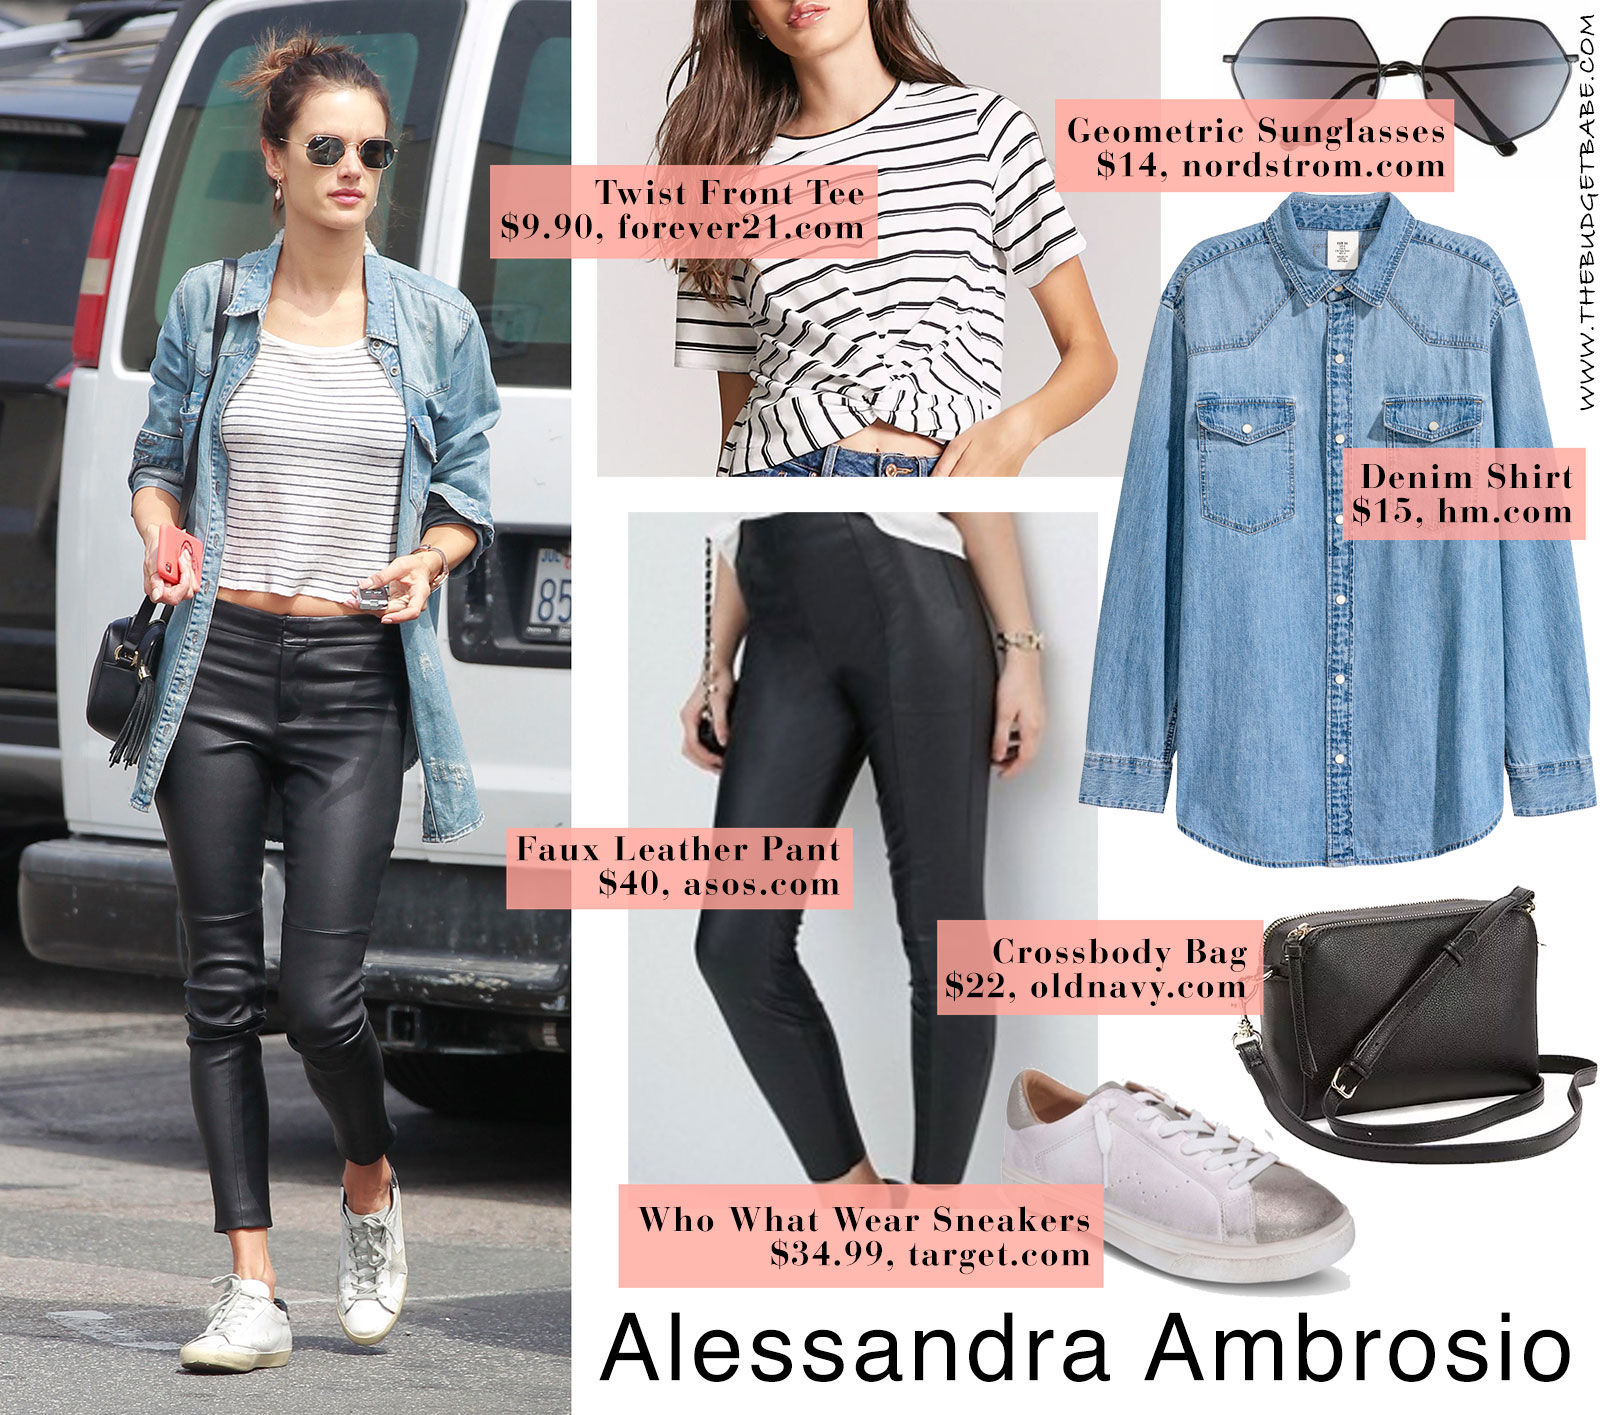 76c22a12031 Alessandra Ambrosio s denim shirt and leather leggings look for less